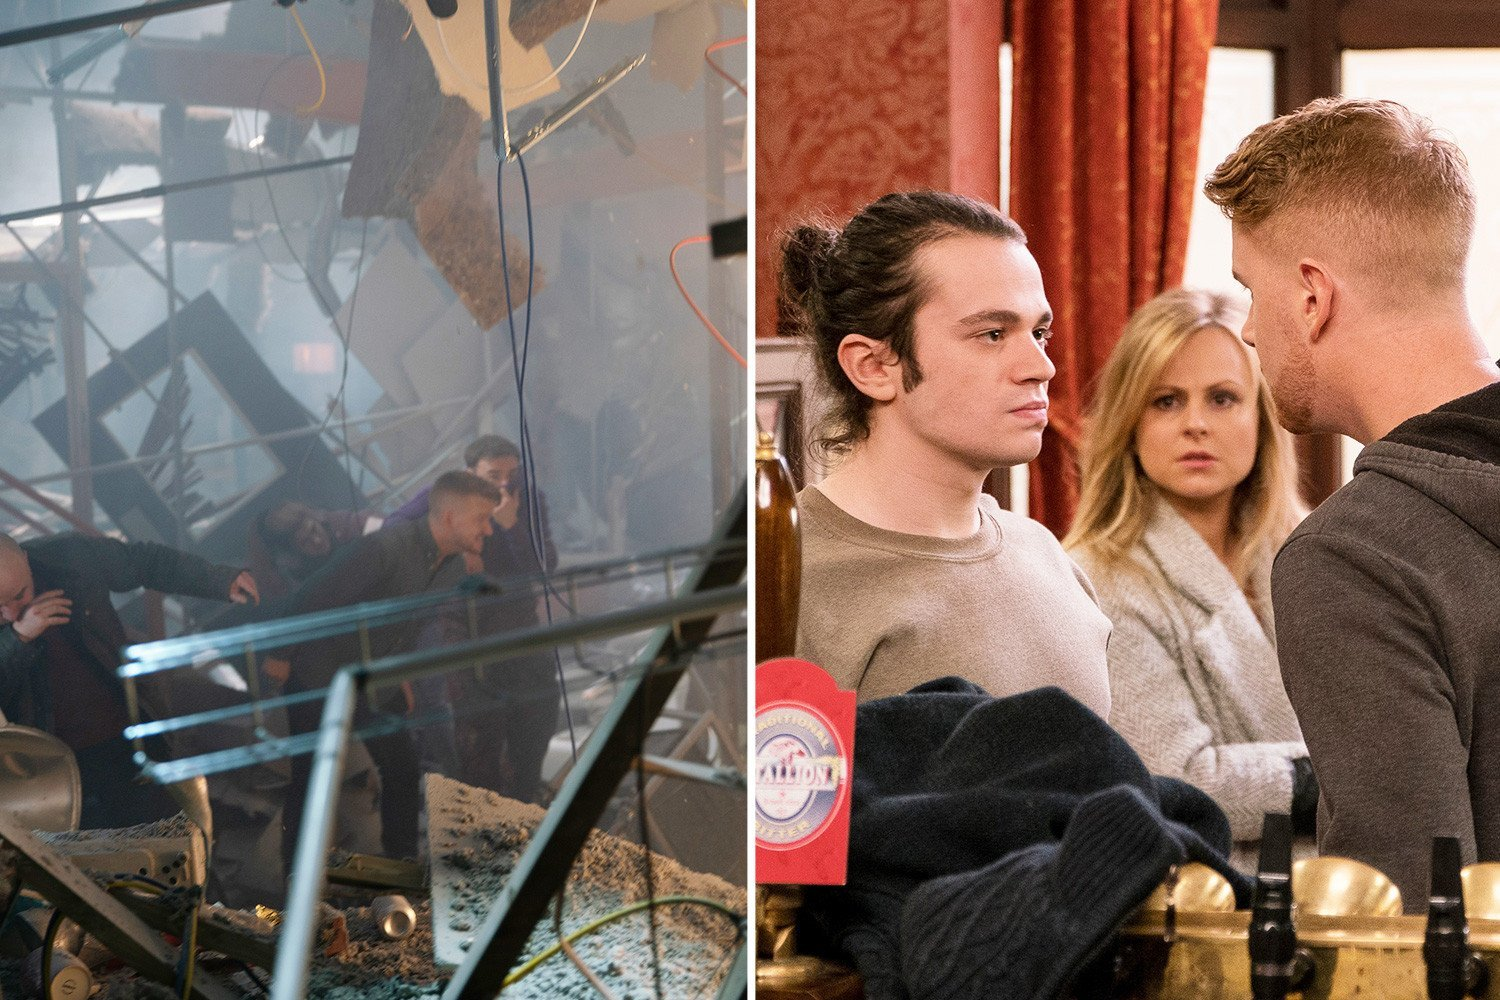 Coronation Street's Gary Windass convinced Seb Franklin caused the roof collapse for revenge, reveals Mikey North